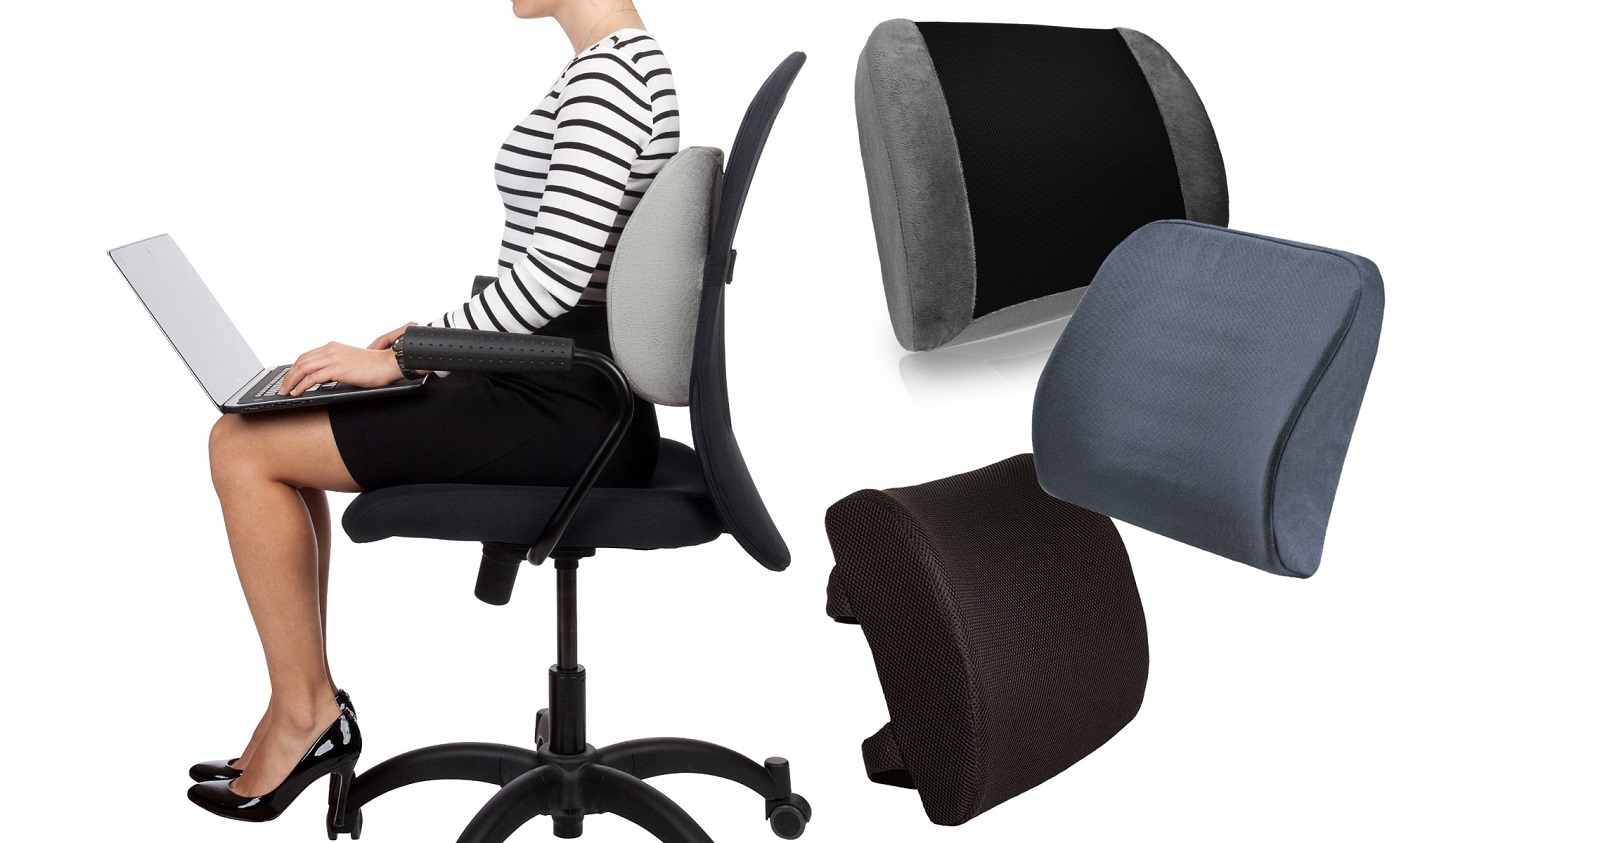 Computer Chair Back Support Best Lumbar Support Cushion For Office Chair Chair And